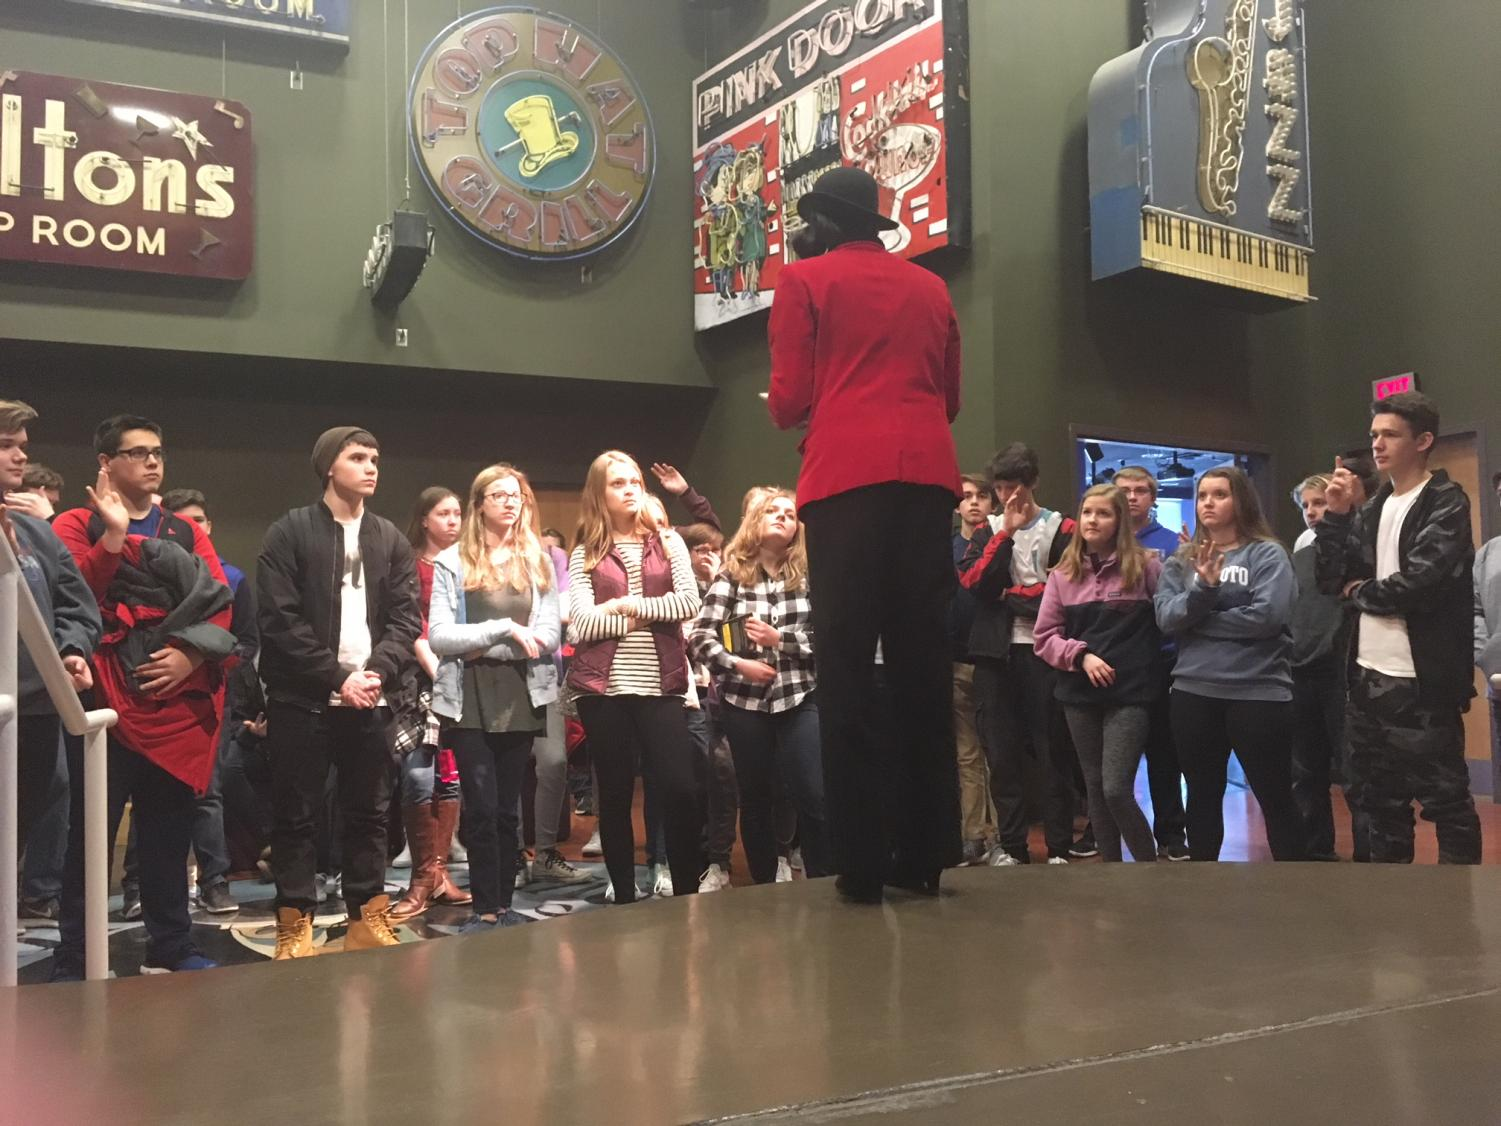 Members of De Soto High School's freshman class listen to a speaker during a field trip to the Negro Leagues Baseball Museum and the American Jazz Museum in downtown Kansas City, Mo., on Jan. 30.